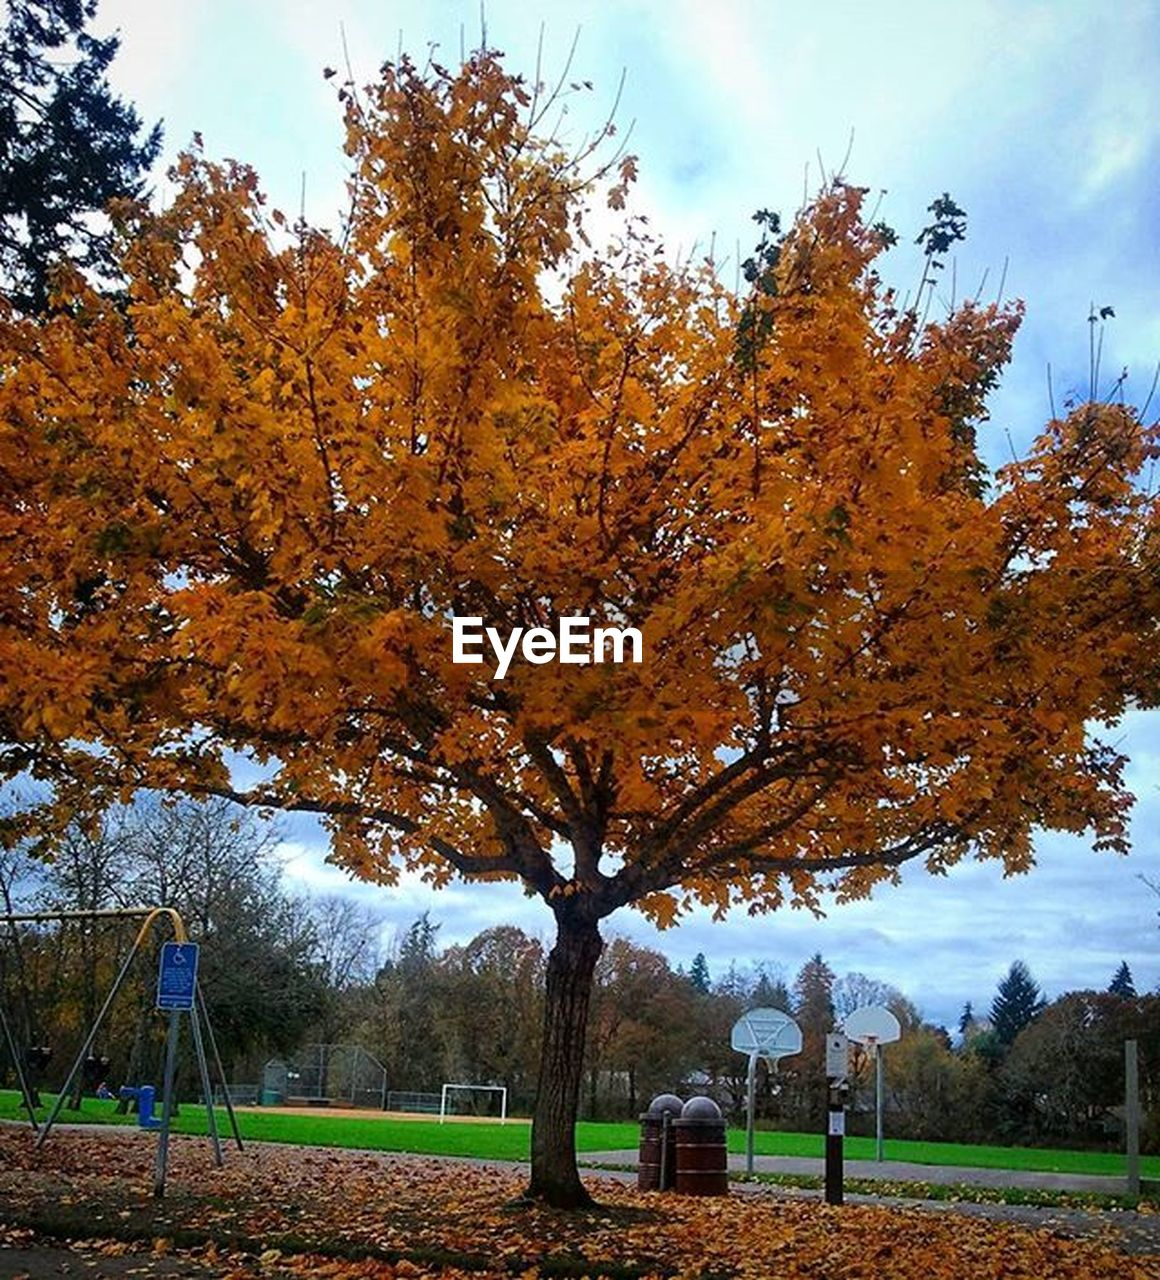 tree, autumn, leaf, change, nature, park - man made space, sky, beauty in nature, outdoors, day, tranquility, no people